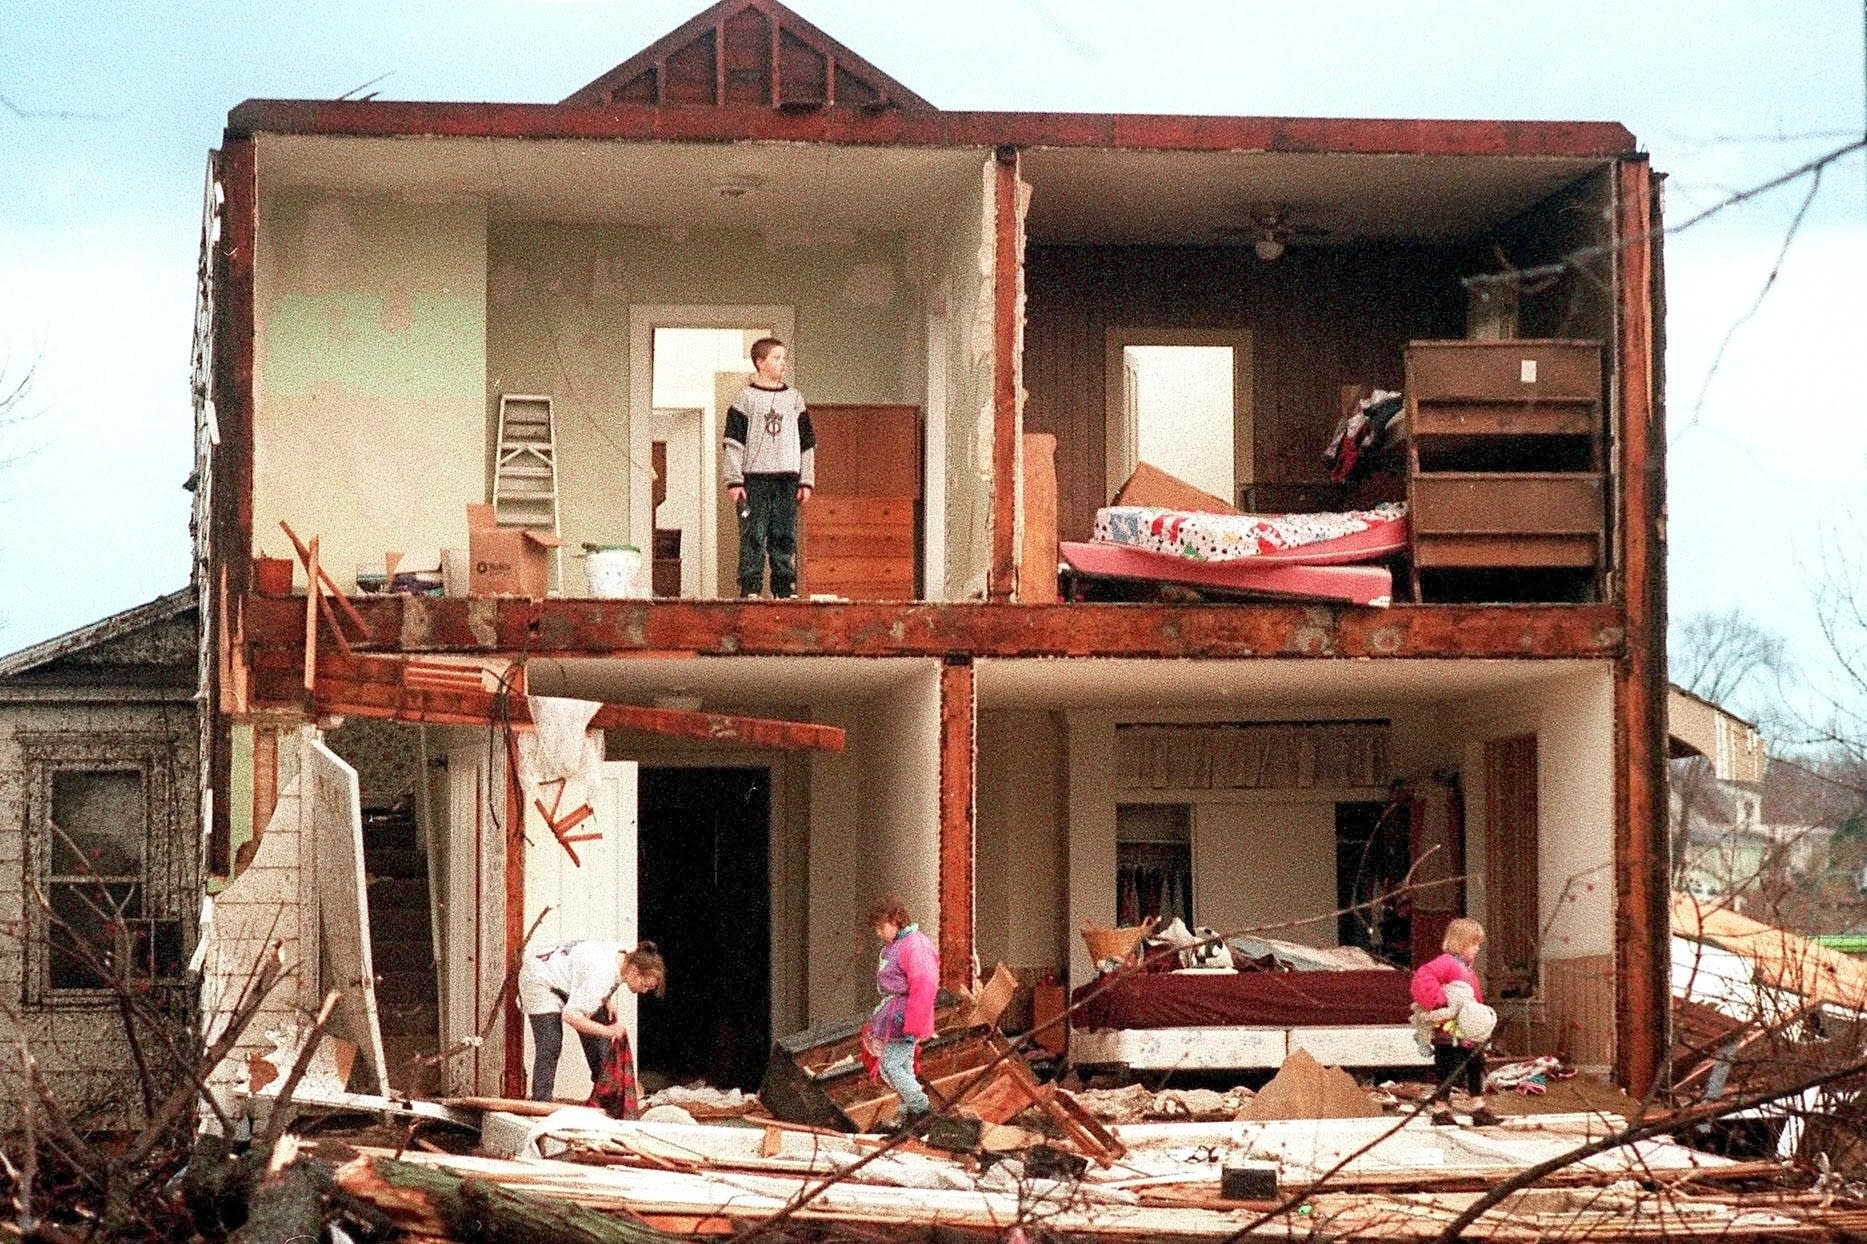 Family members search for the family cat shortly after a tornado.